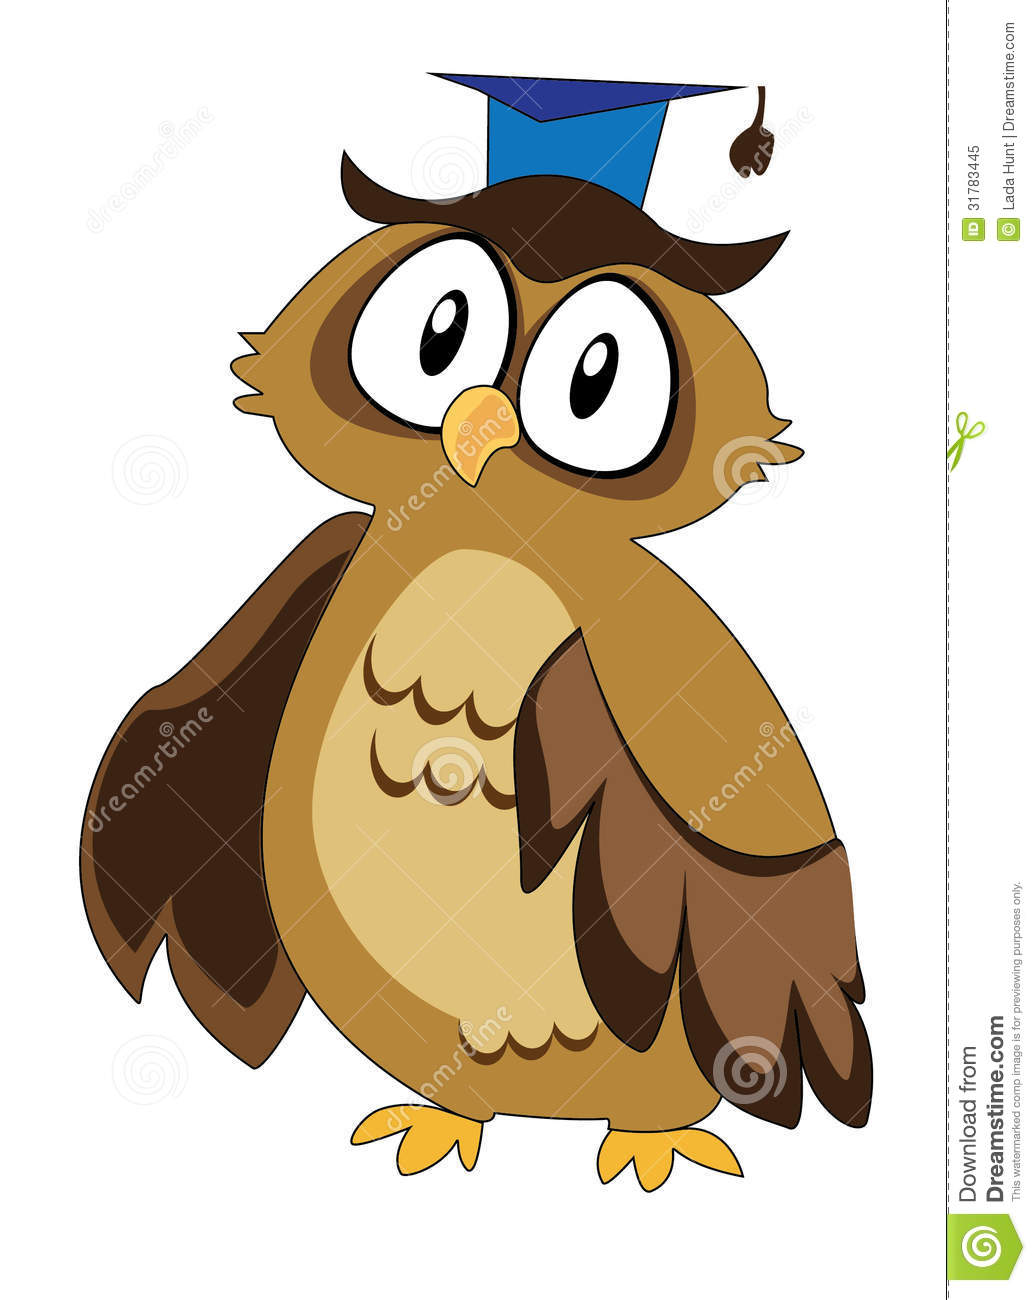 Wise Owl Clip Art Wise owl